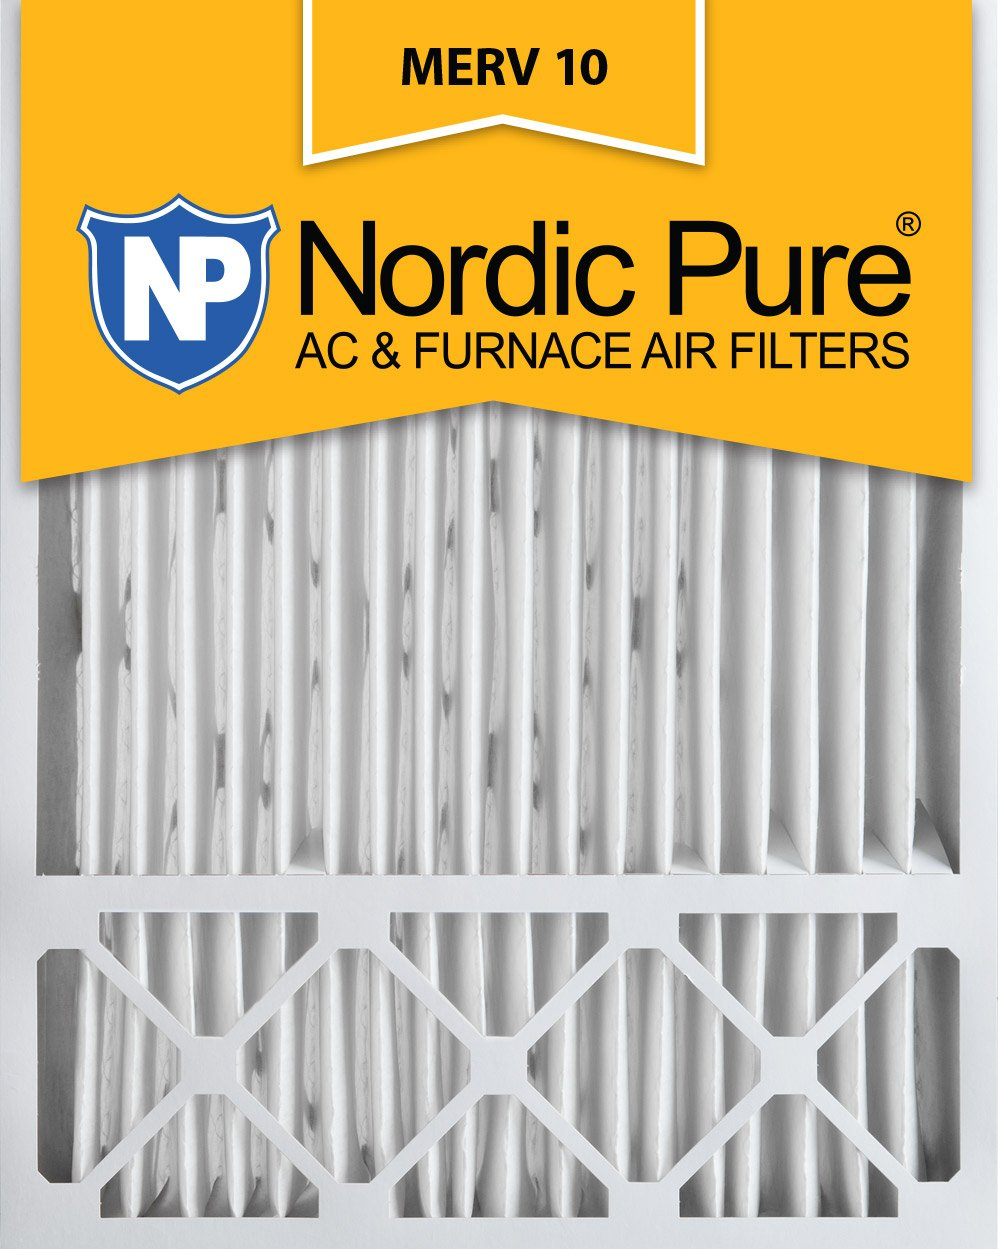 Nordic Pure 20x25x5 (4-3/8 Actual Depth) MERV 10 Honeywell Replacement  Pleated AC Furnace Air Filter, Box of 2 - Replacement Furnace Filters -  Amazon.com